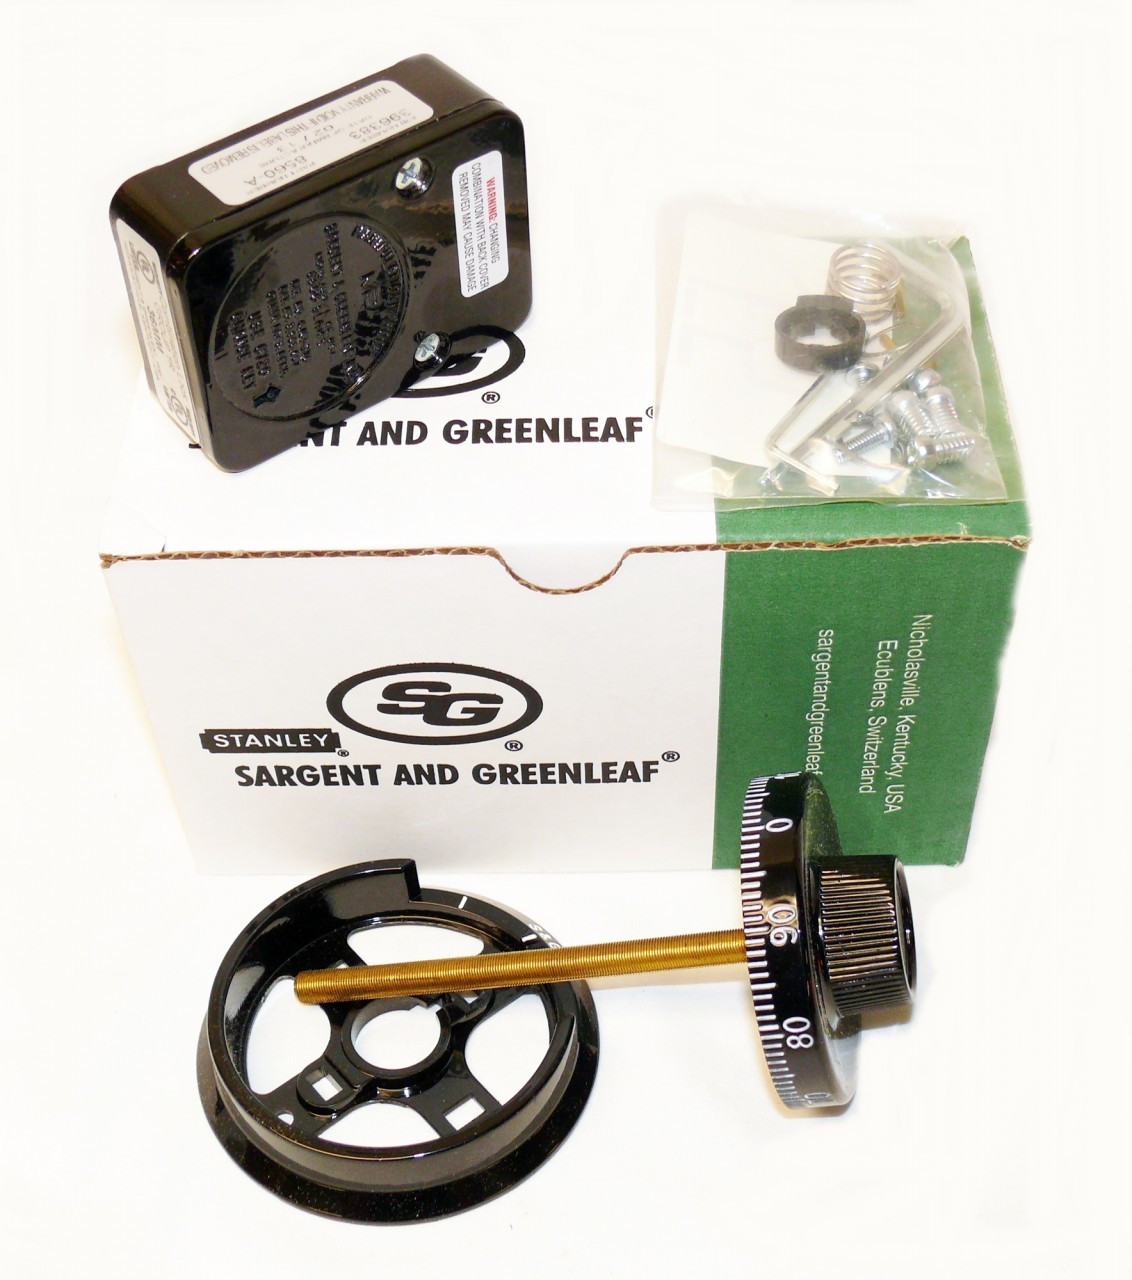 sargent and greenleaf 3 wheel instructions